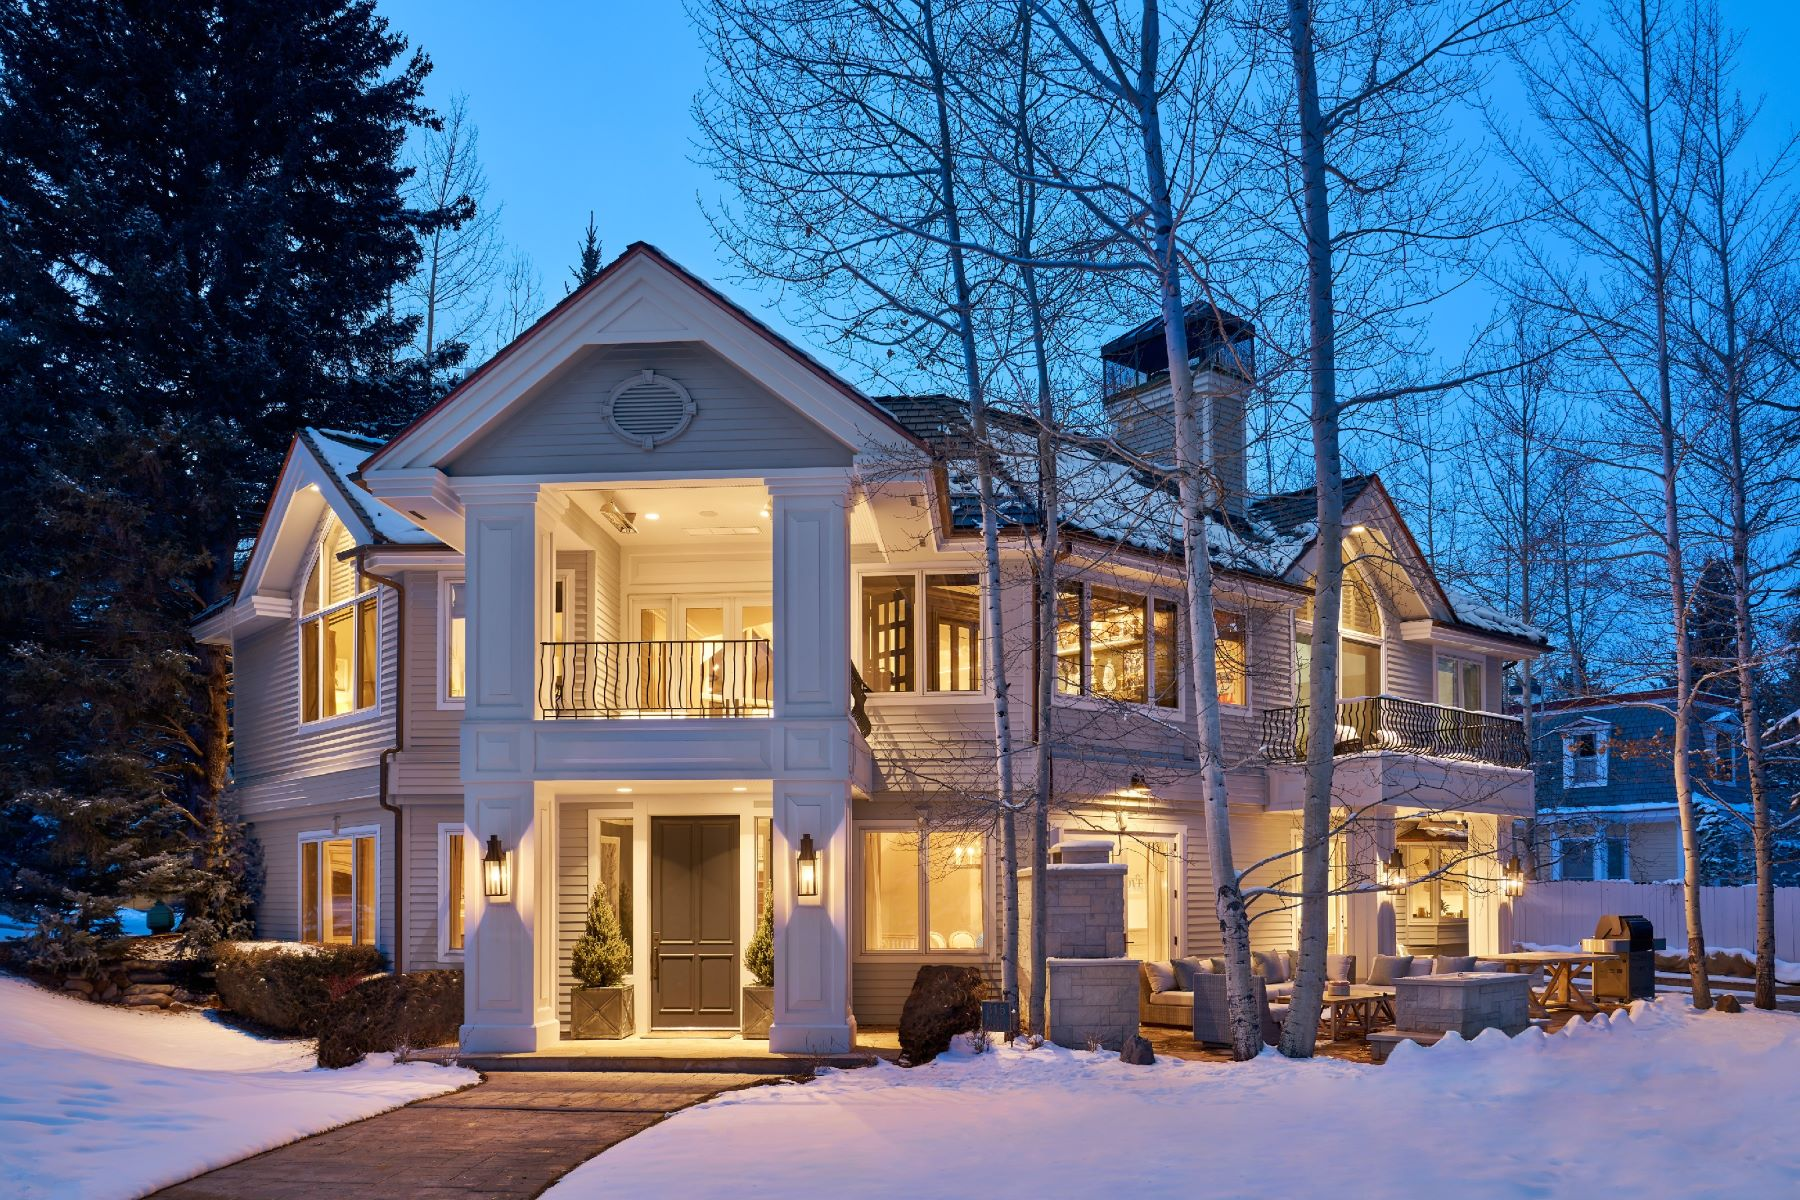 Single Family Home for Sale at Prominent West End Luxury 315 Lake Avenue, Aspen, Colorado, 81611 United States